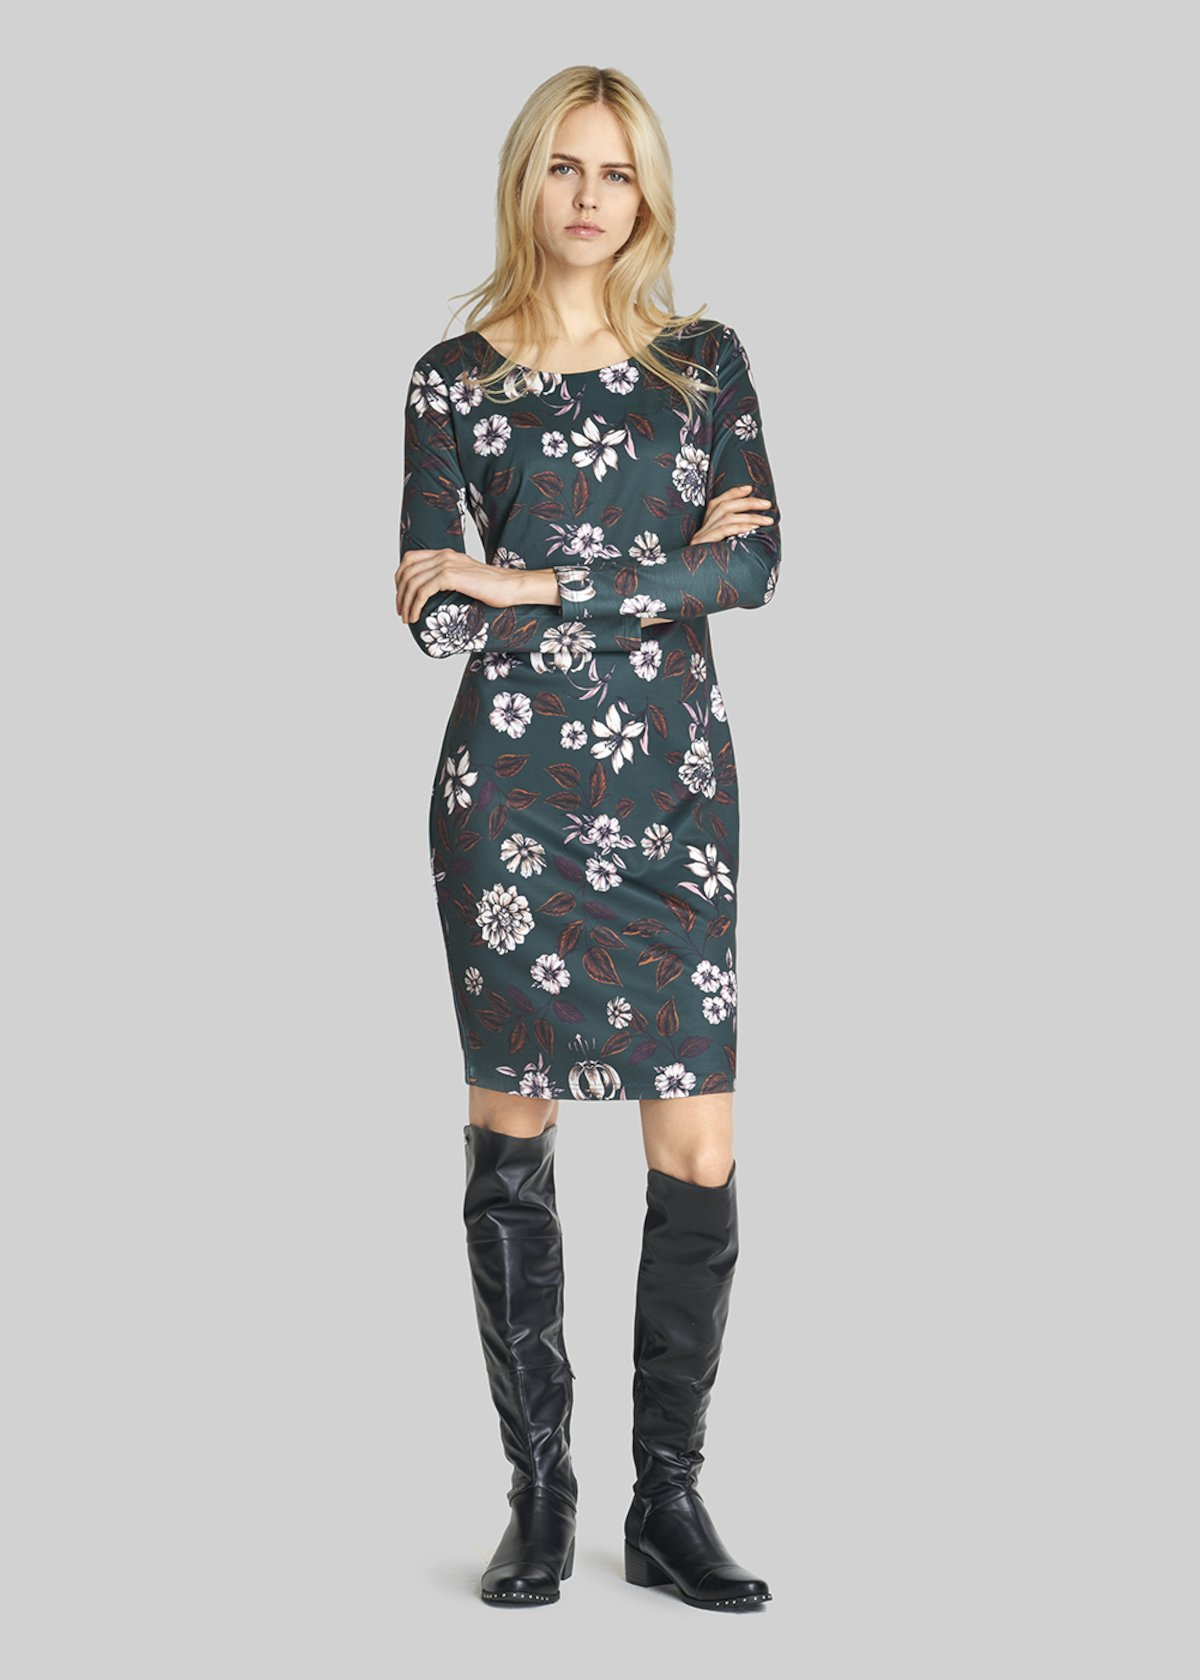 Avril dress floral pattern with boat neckline